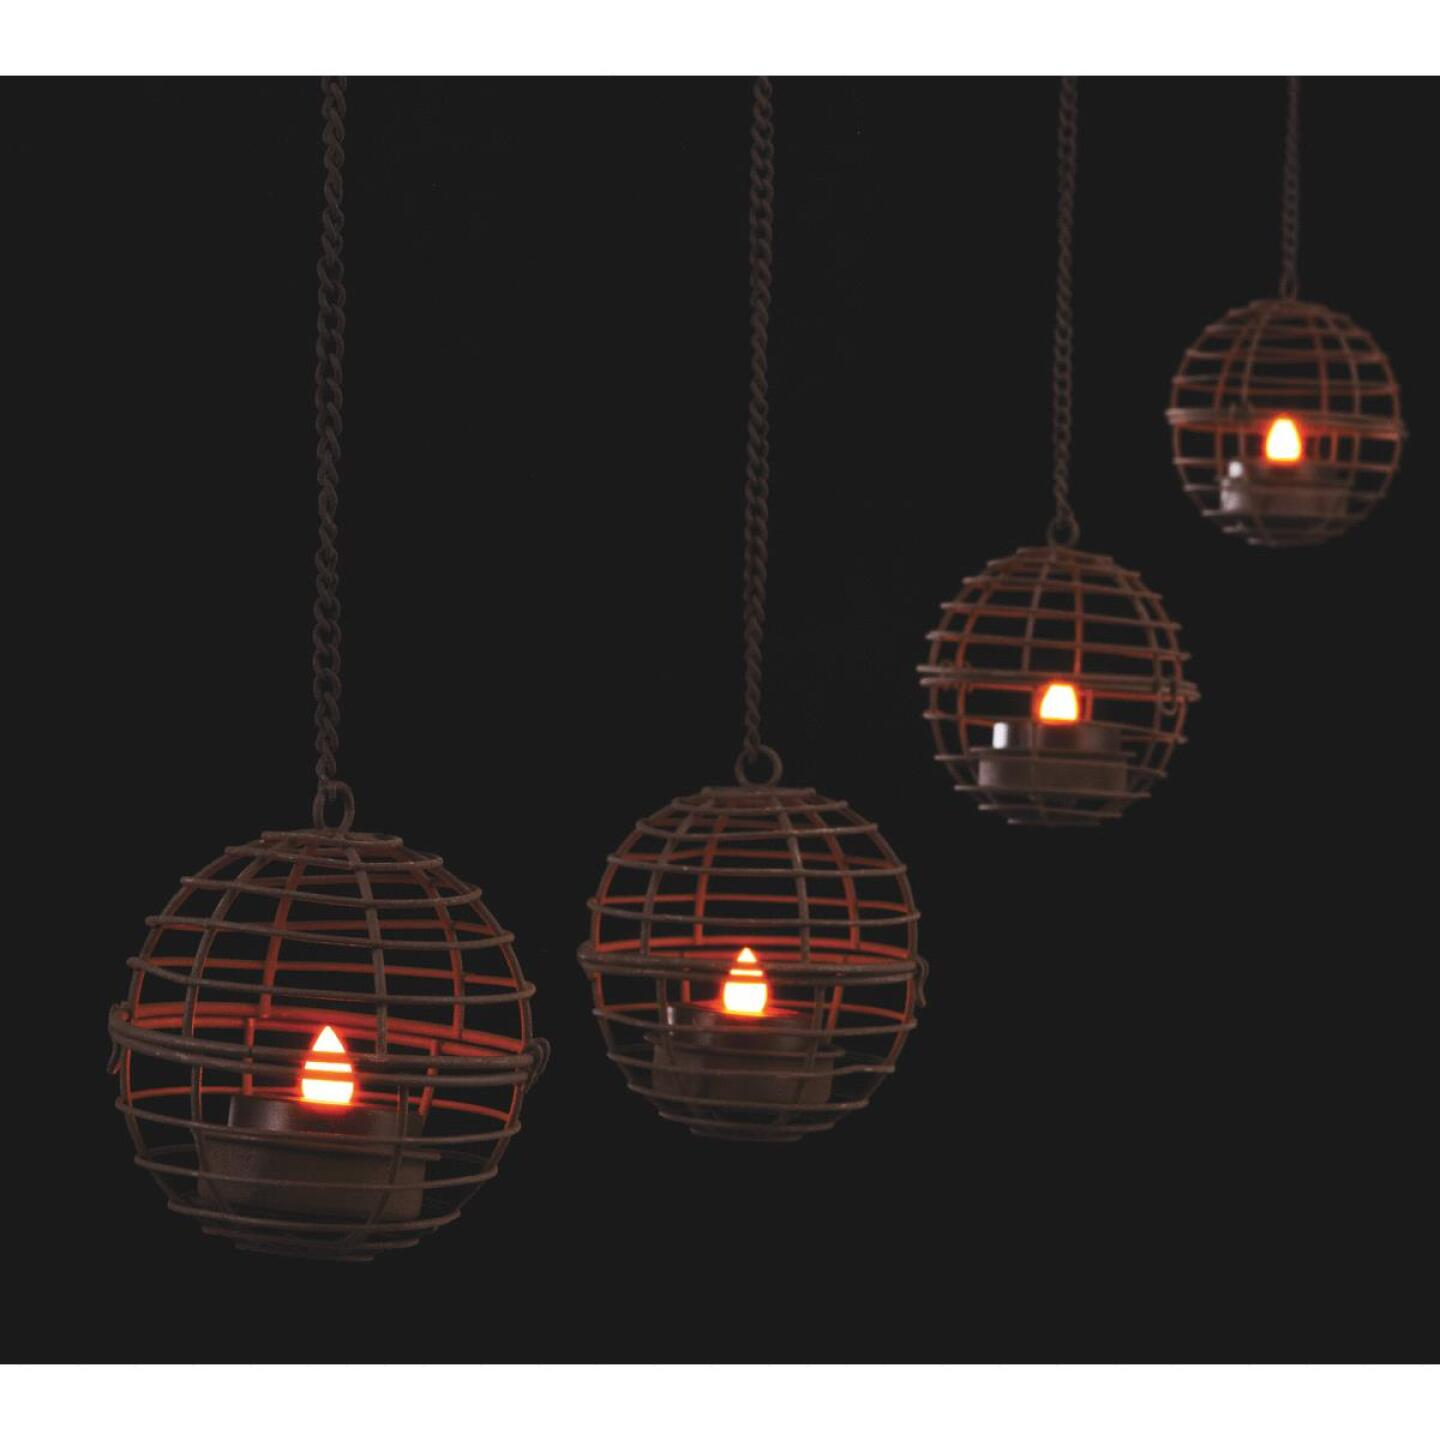 Gerson 4-Light Brown Wire Hanging Fireball Patio Light Set (4-Pack) Image 3